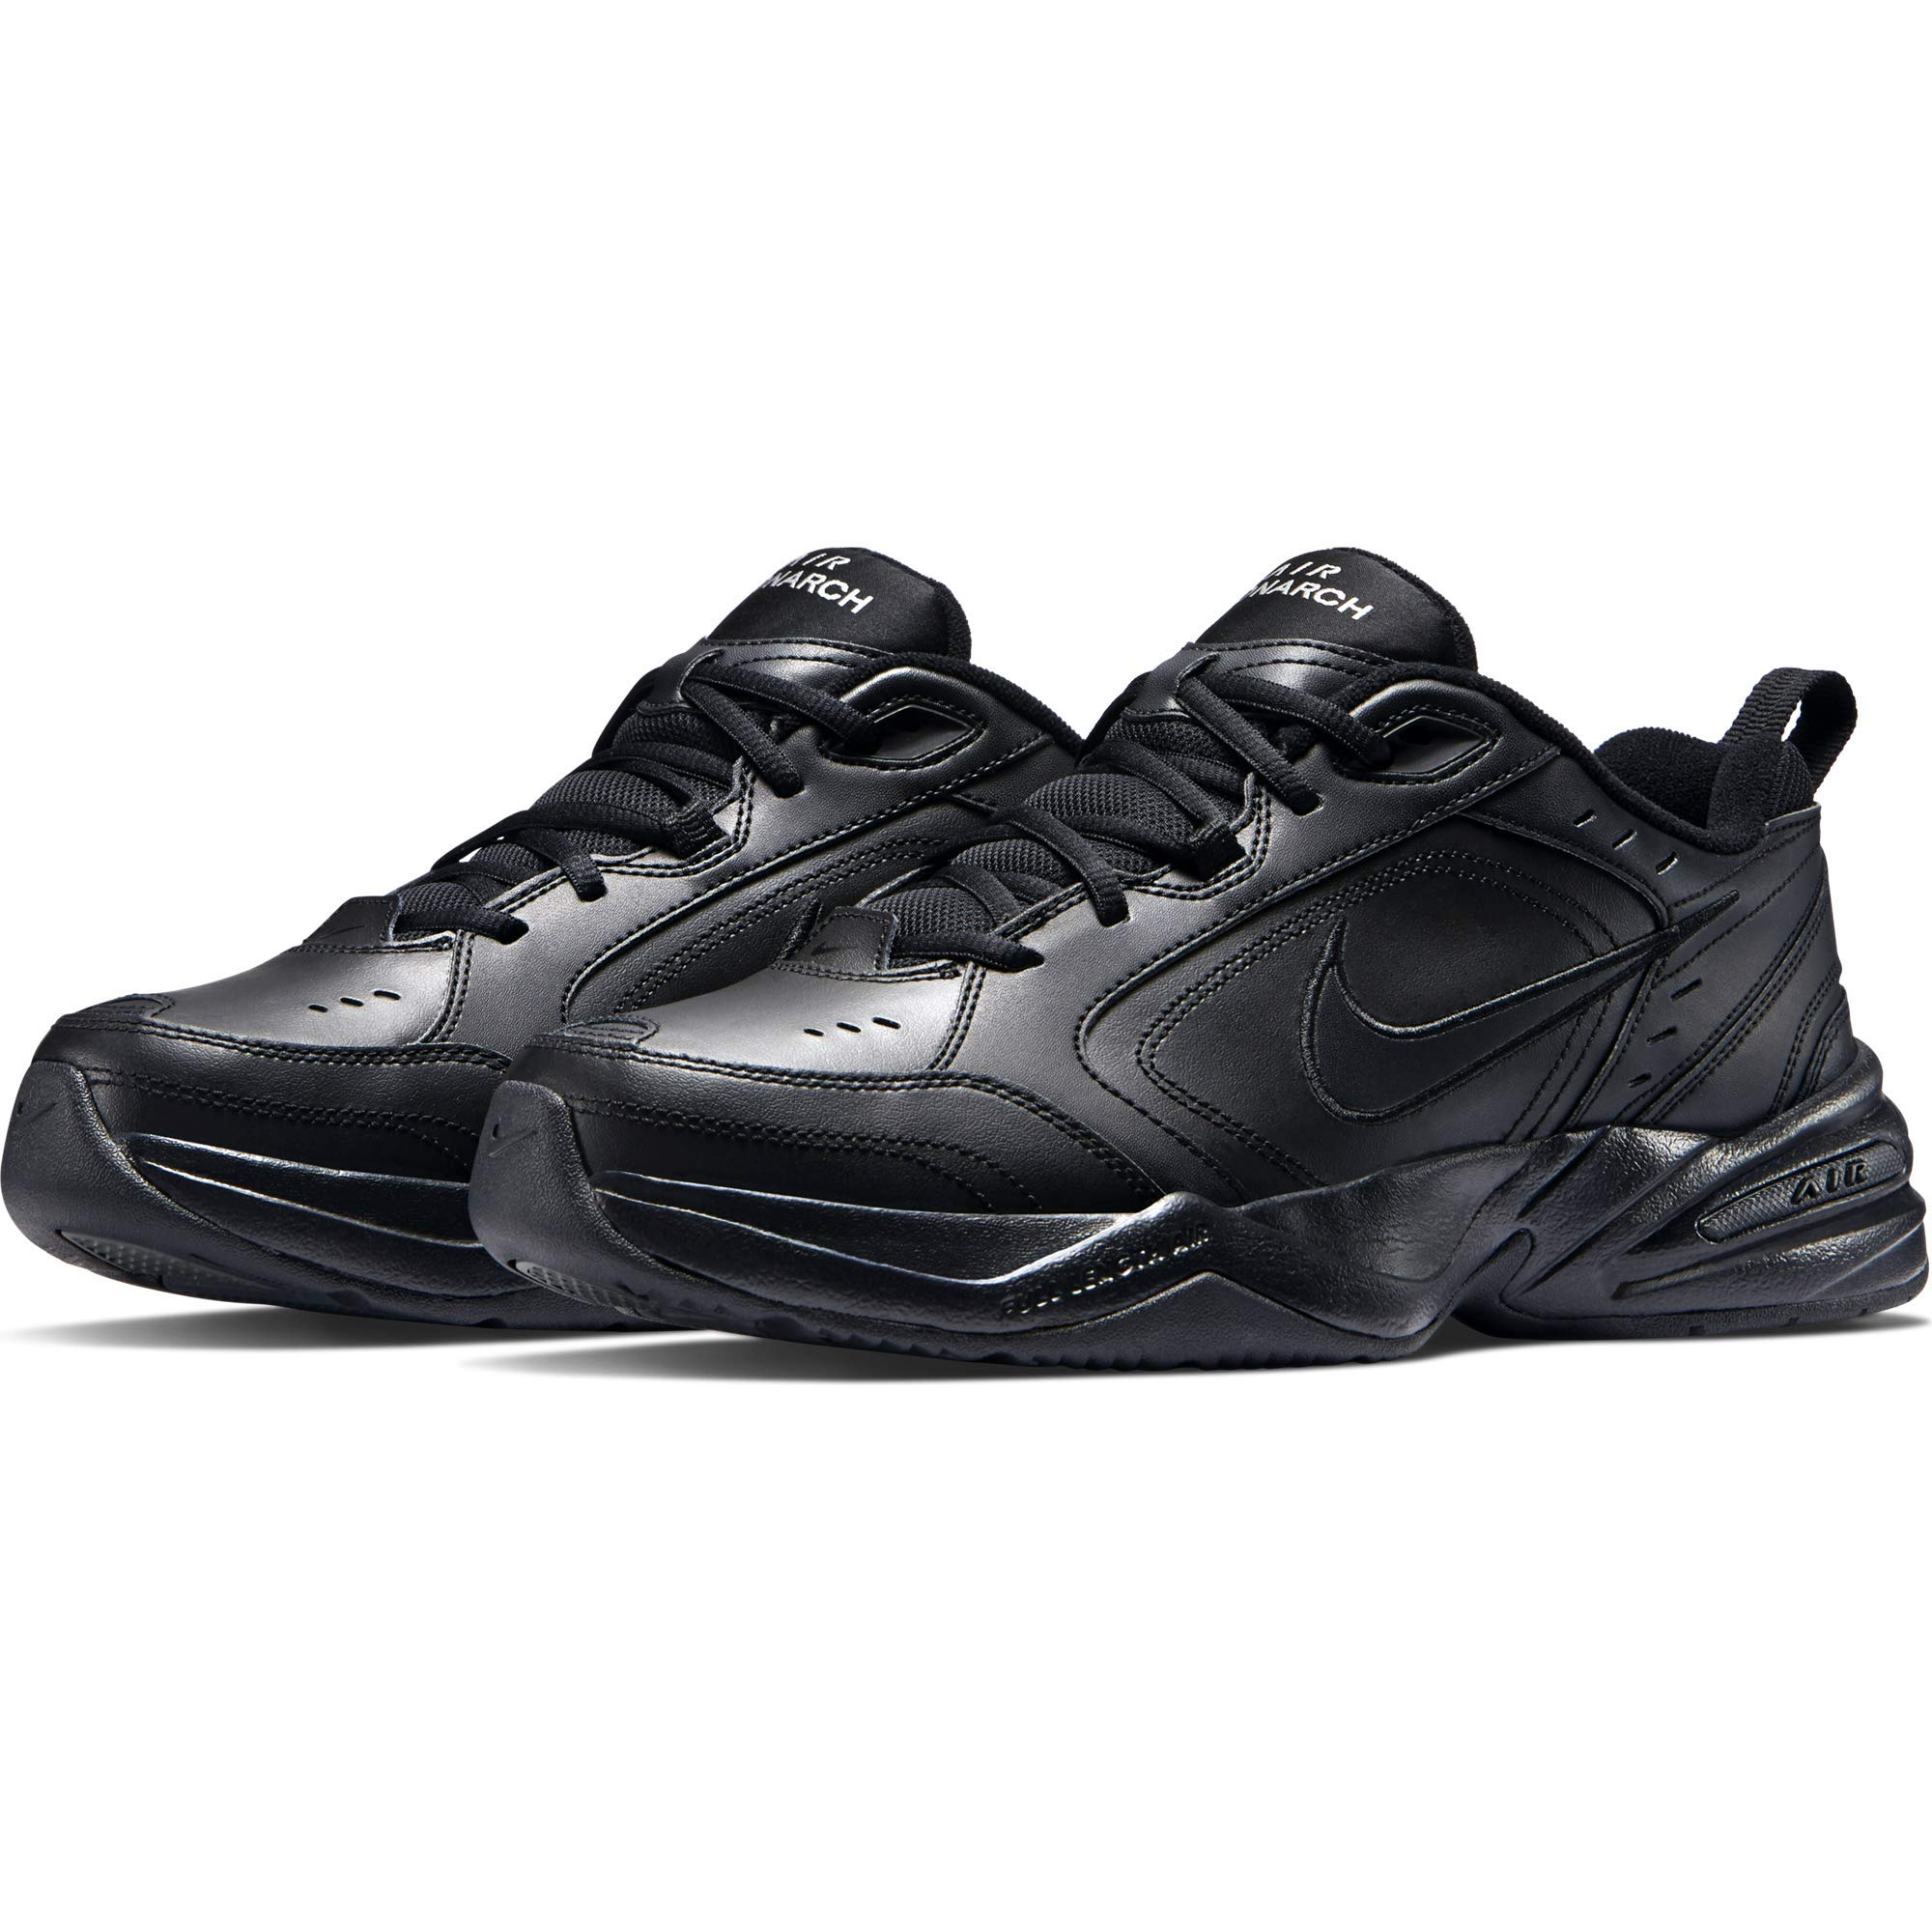 Nike Men's Air Monarch IV Cross Trainer, Black, 6.5 4E